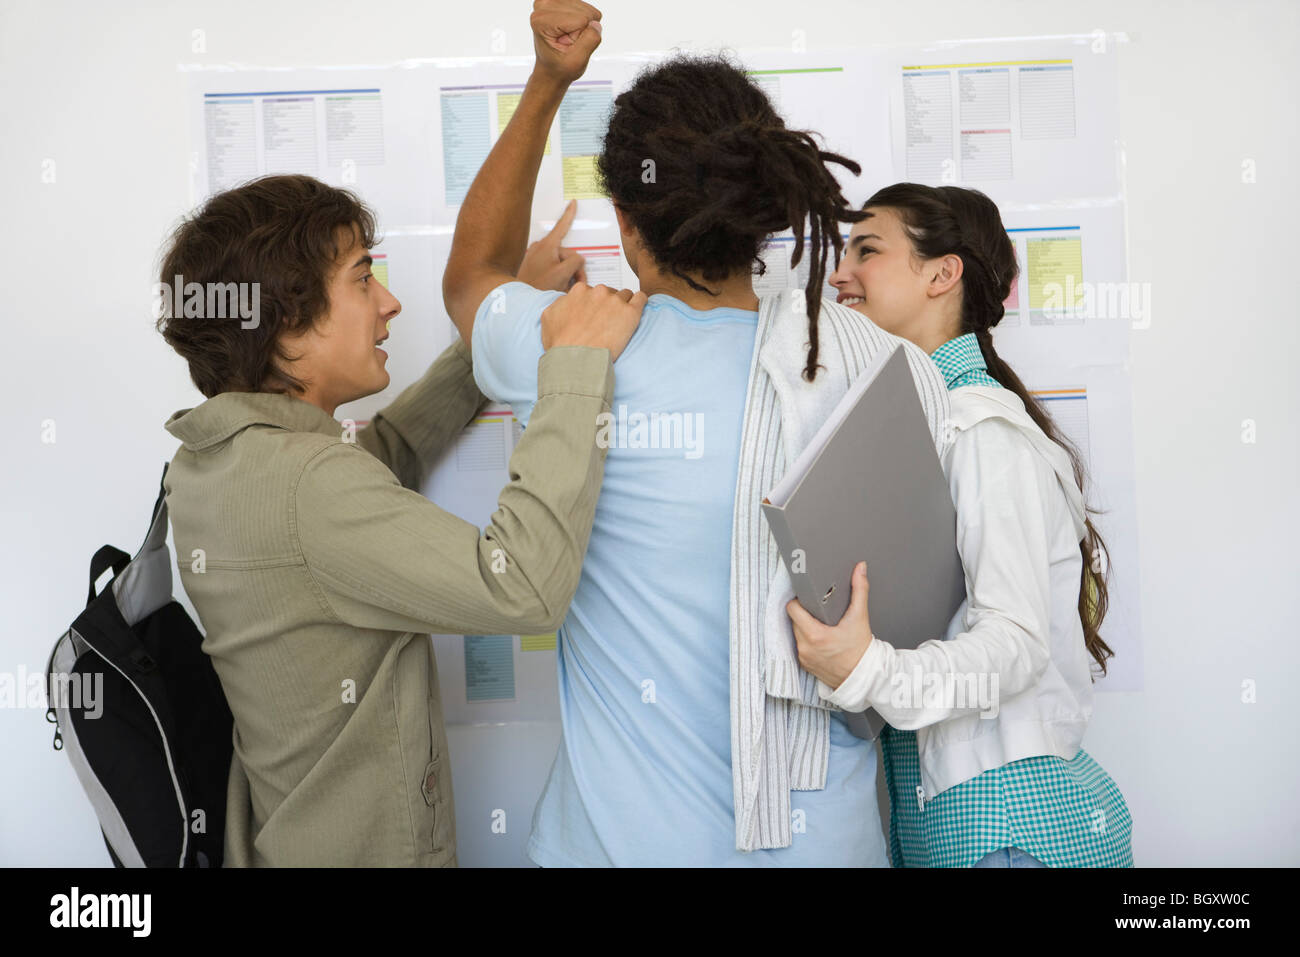 College student looking at results posted on bulletin board raising fist, classmates congratulating, rear view - Stock Image